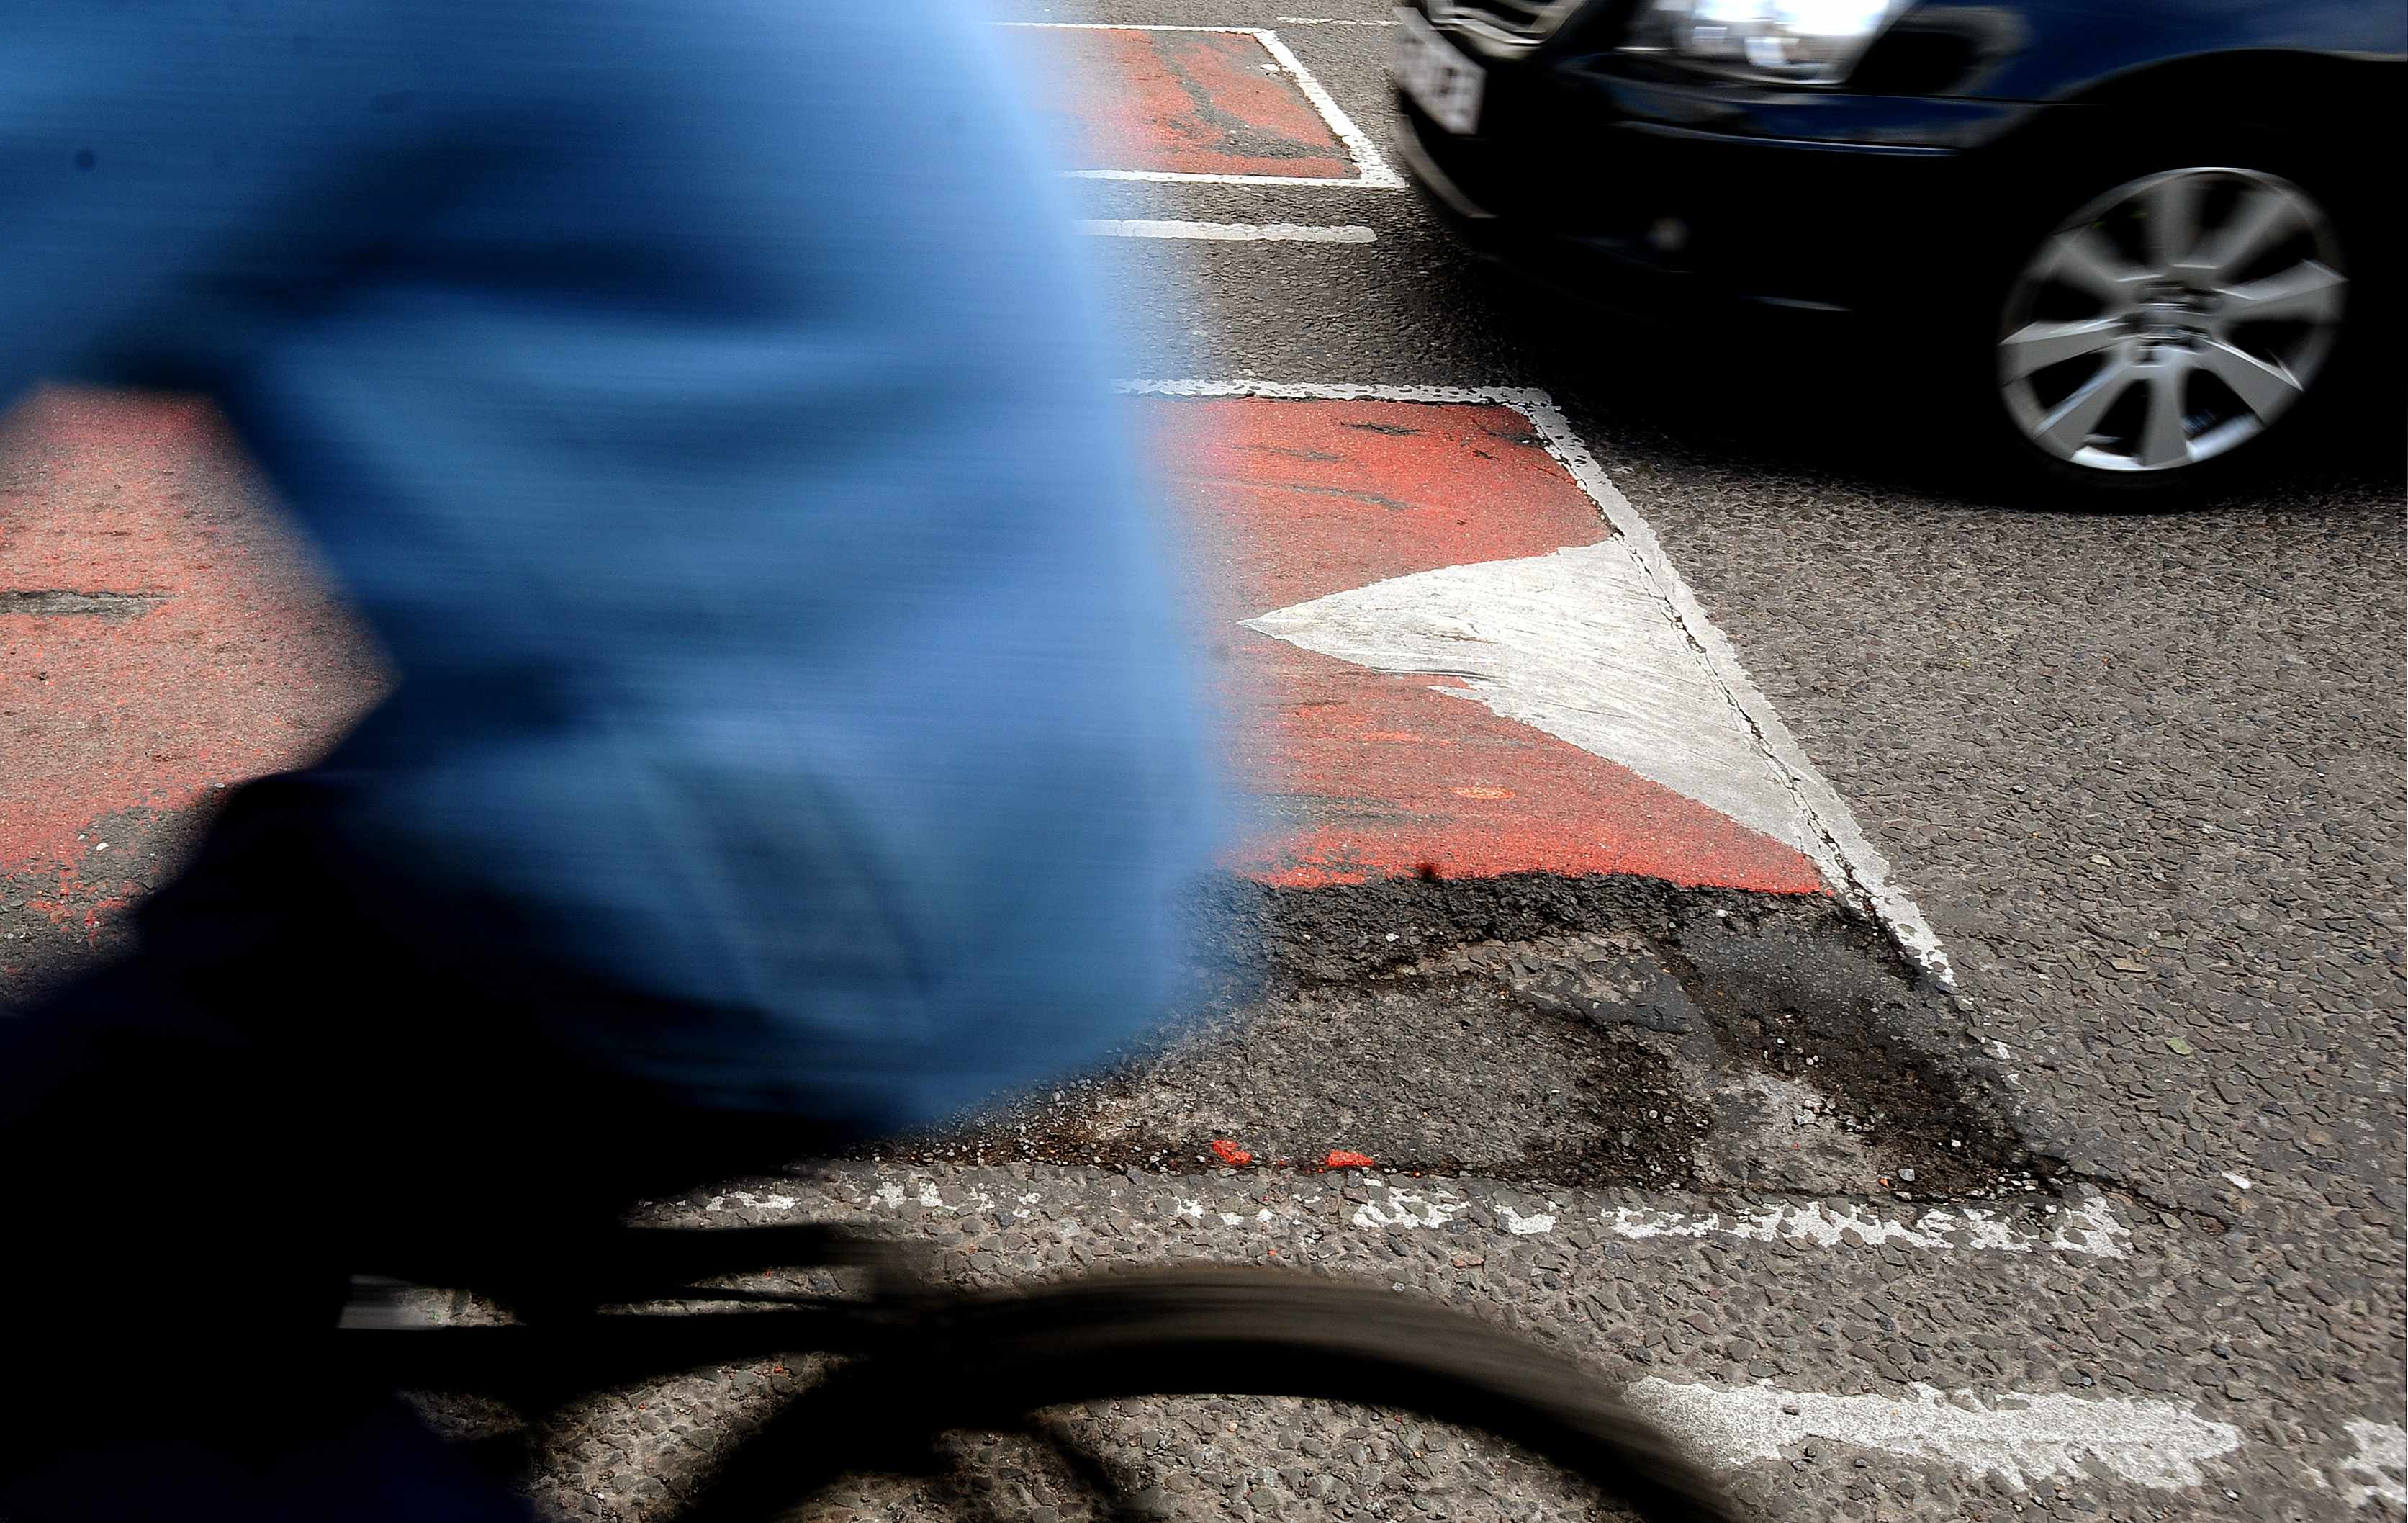 Crumbling roads: an area of common ground for cyclists and motorists